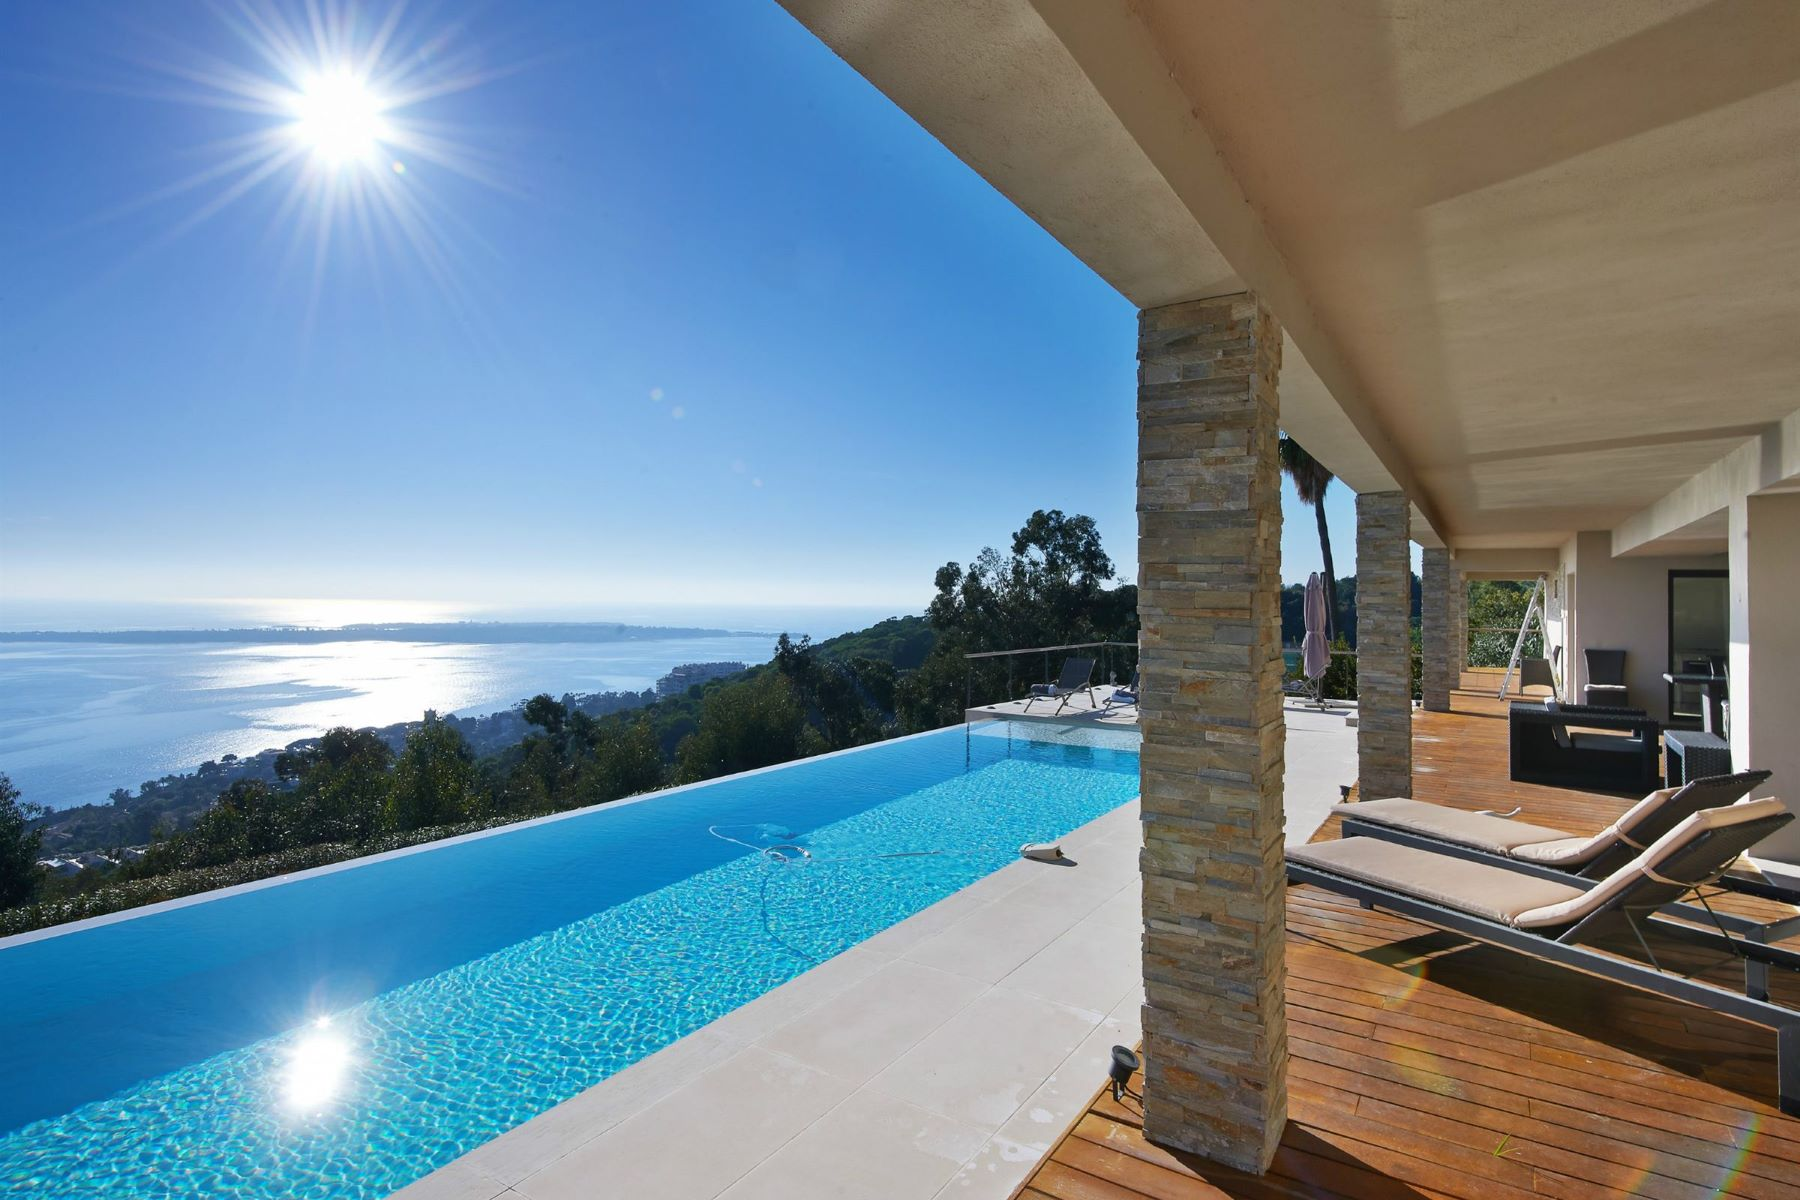 Einfamilienhaus für Verkauf beim Contemporary estate in Super Cannes with panoramic sea views Cannes, Provence-Alpes-Cote D'Azur, 06400 Frankreich